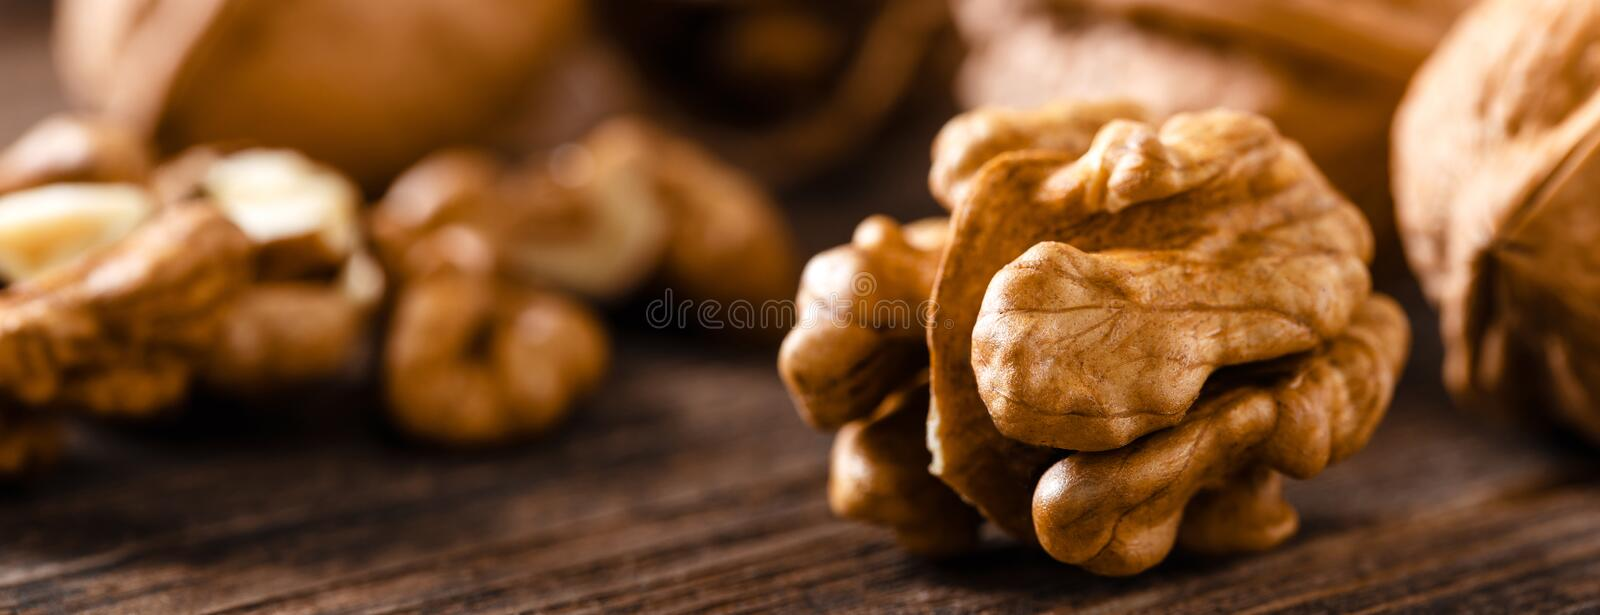 Walnuts. Kernels and whole nuts on wooden rustic table closeup, banner. Walnuts. Kernels and whole nuts on wooden rustic table, banner royalty free stock image